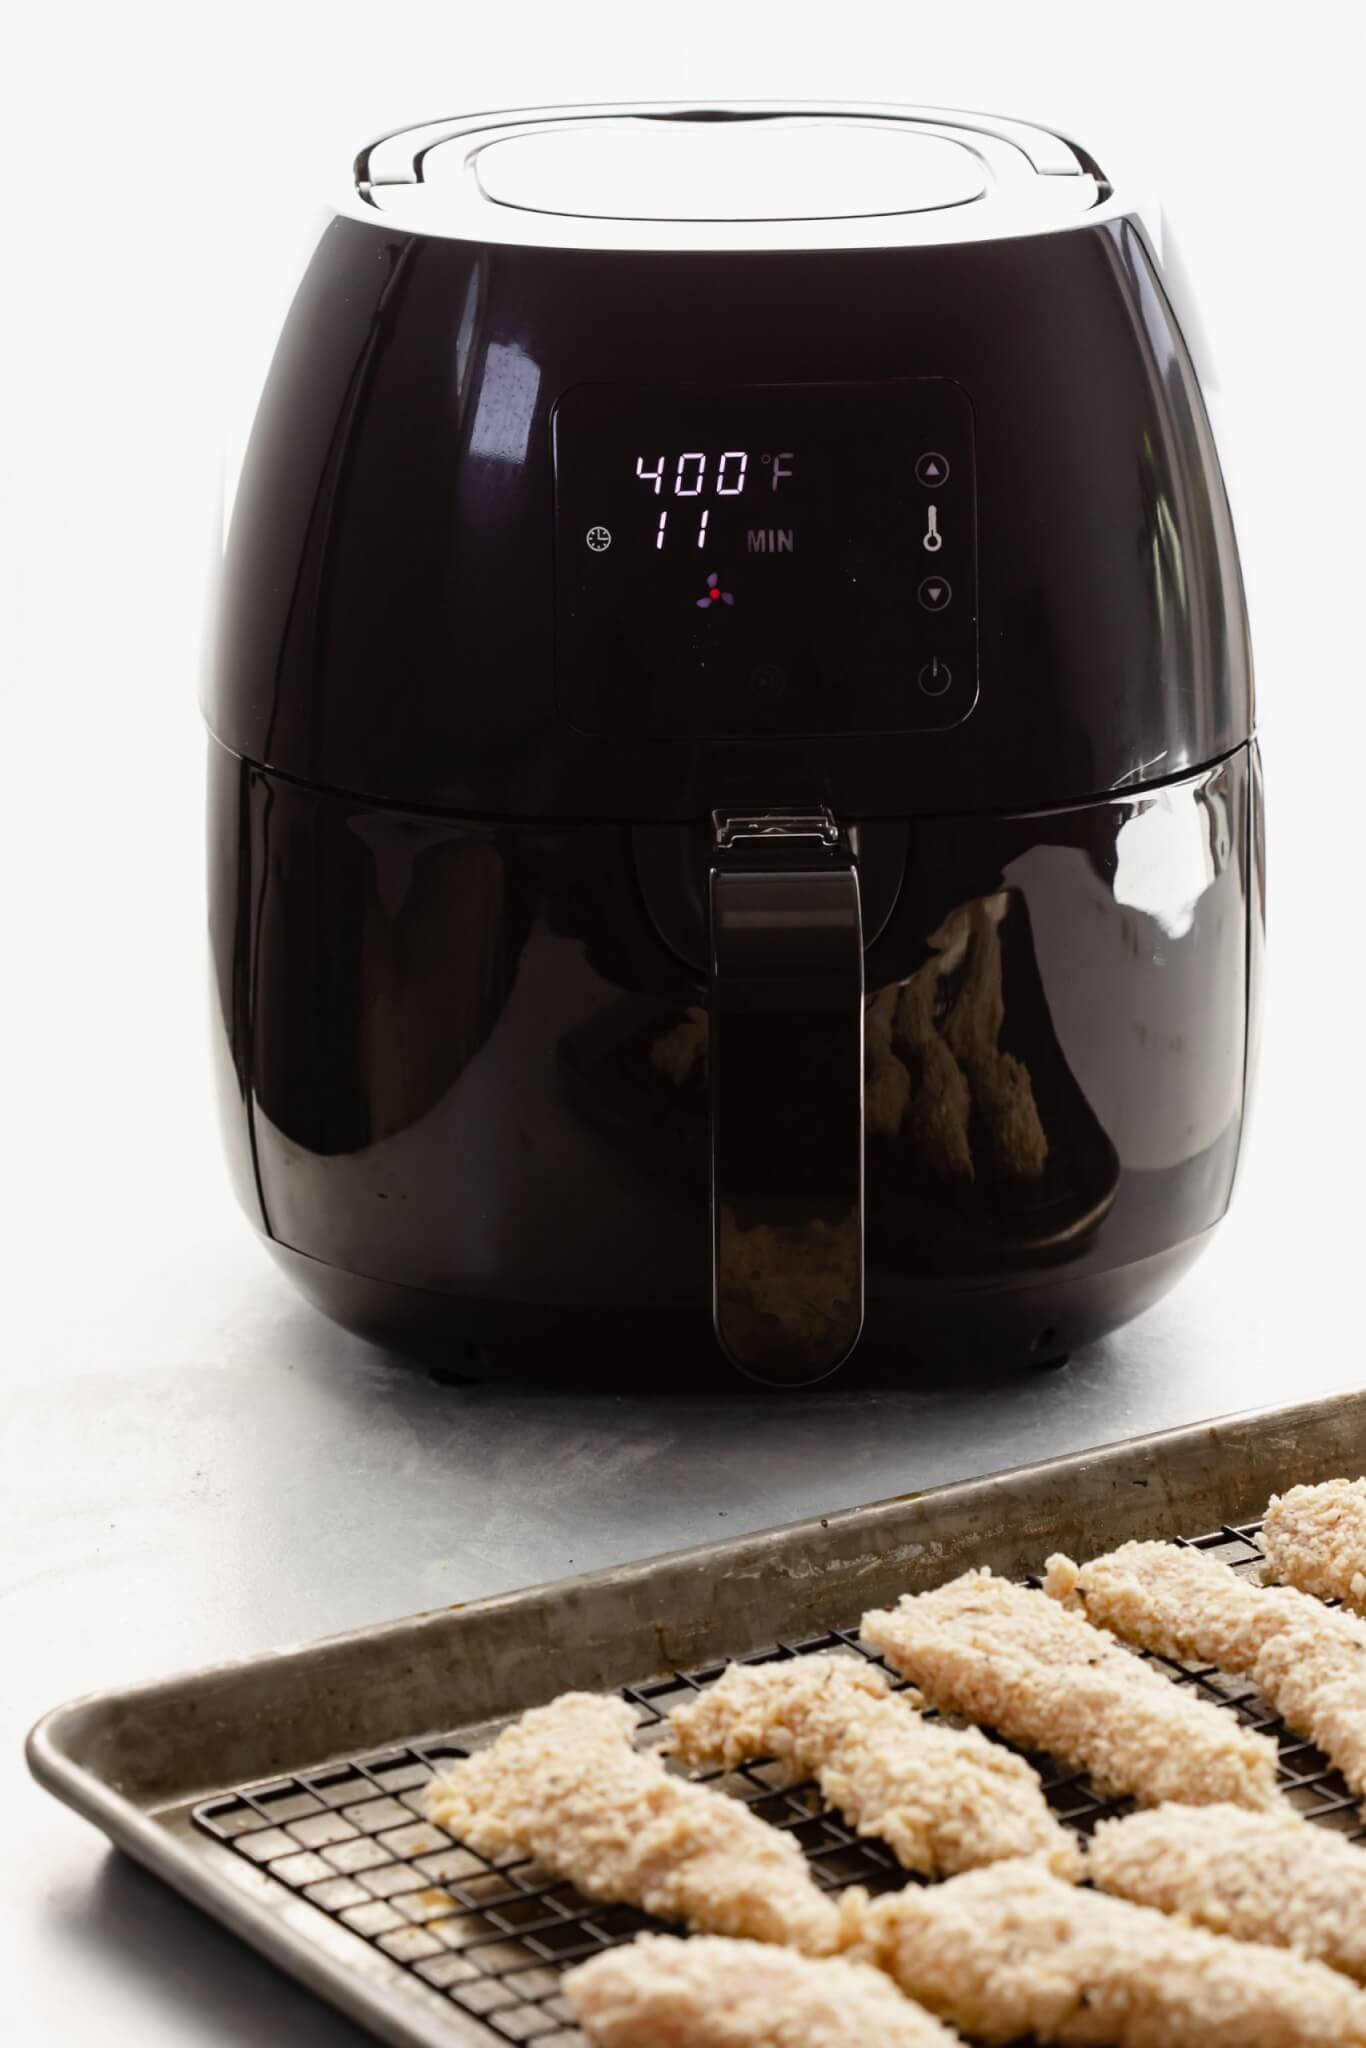 Air fryer set to 400 degrees.